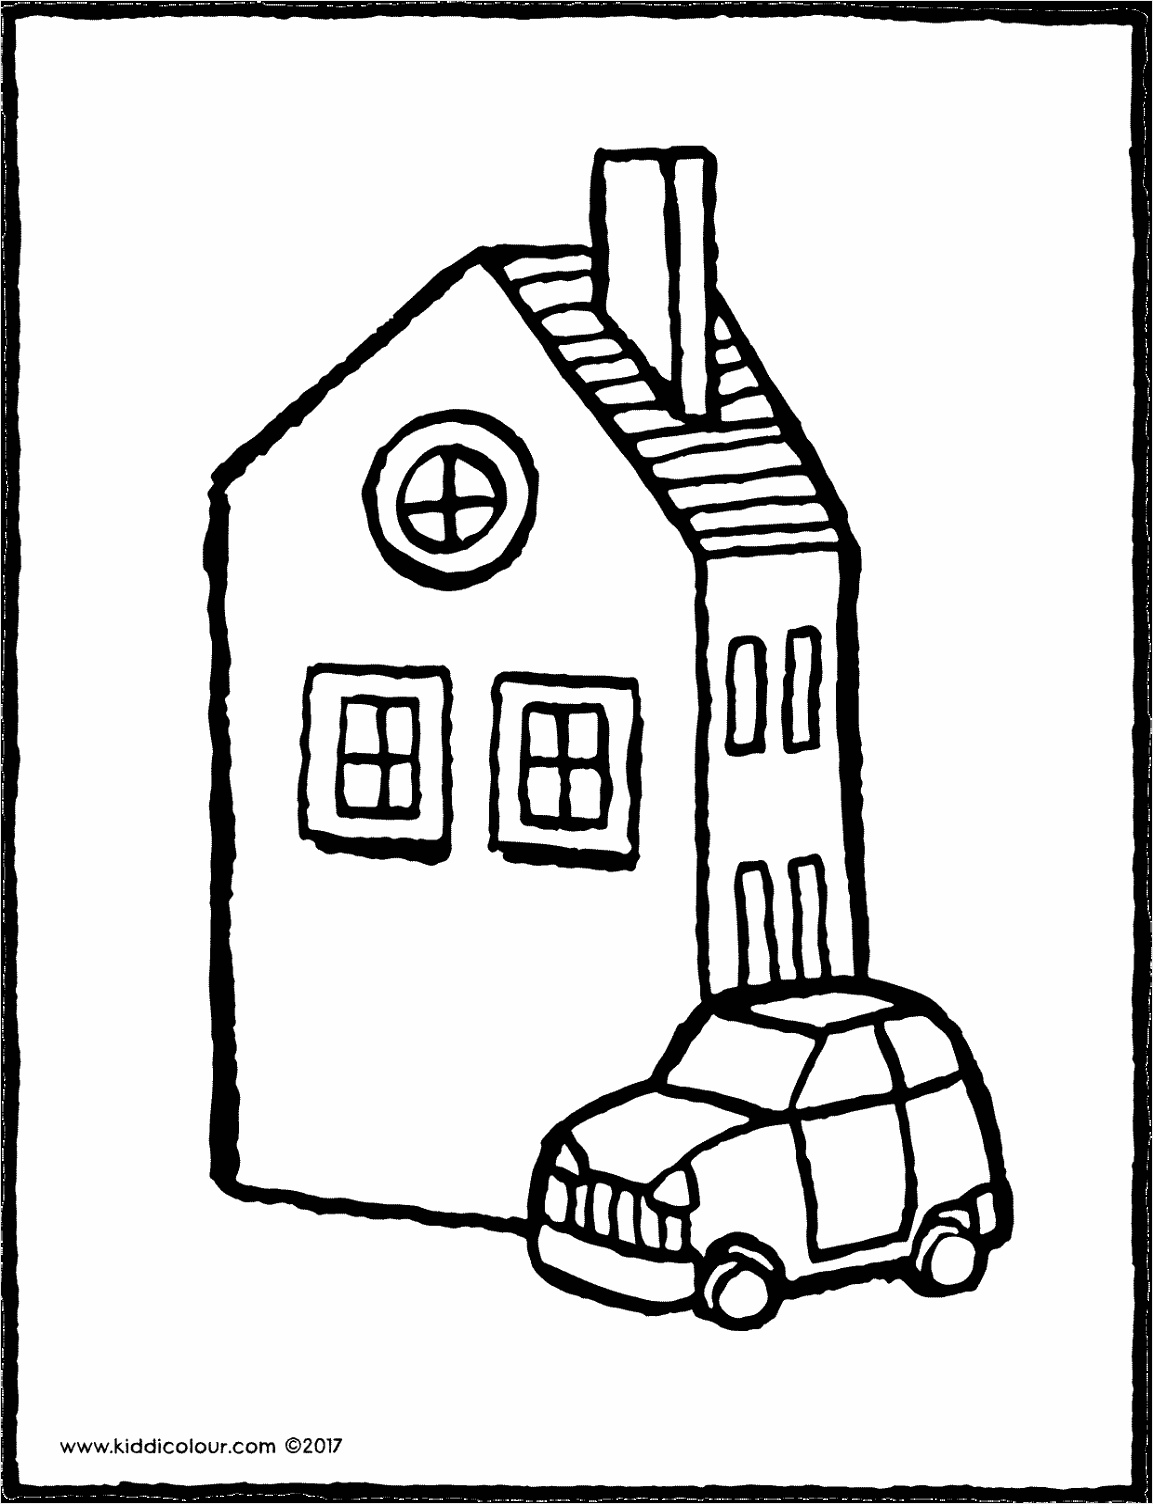 a house with a car colouring page page drawing picture 02V aicia